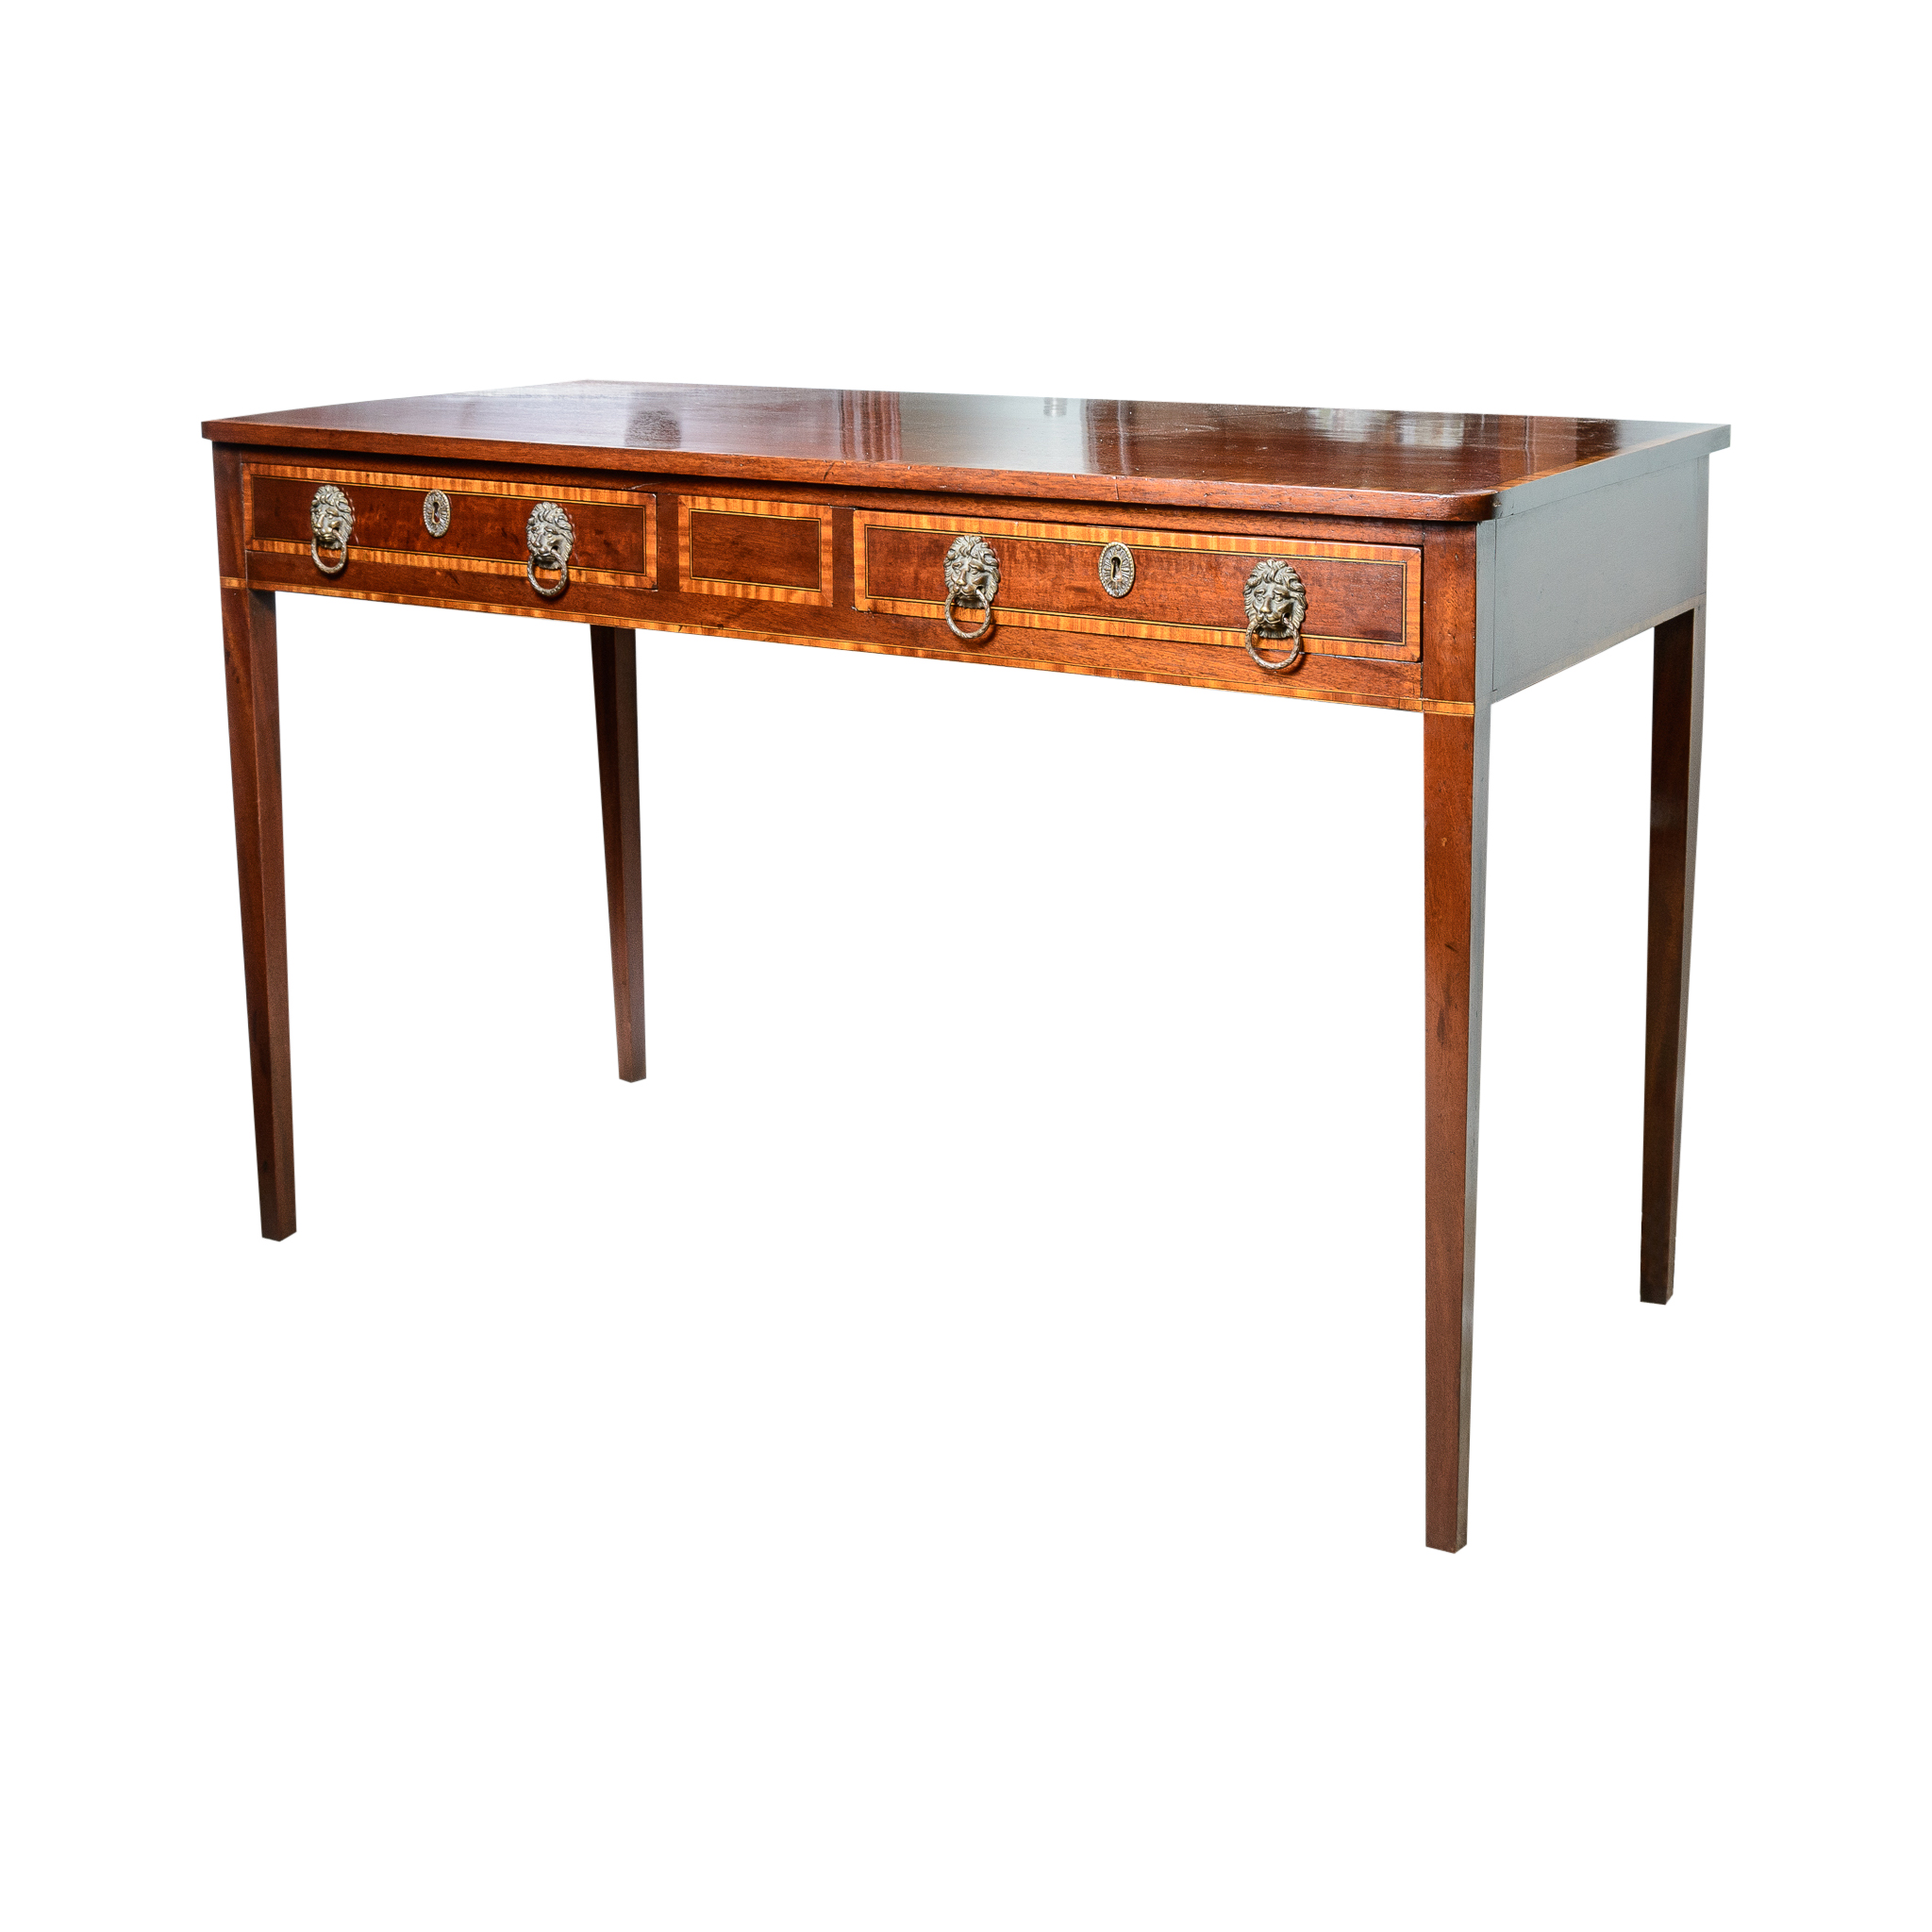 Antique dressing table on antique row west palm beach for Table 52 west palm beach